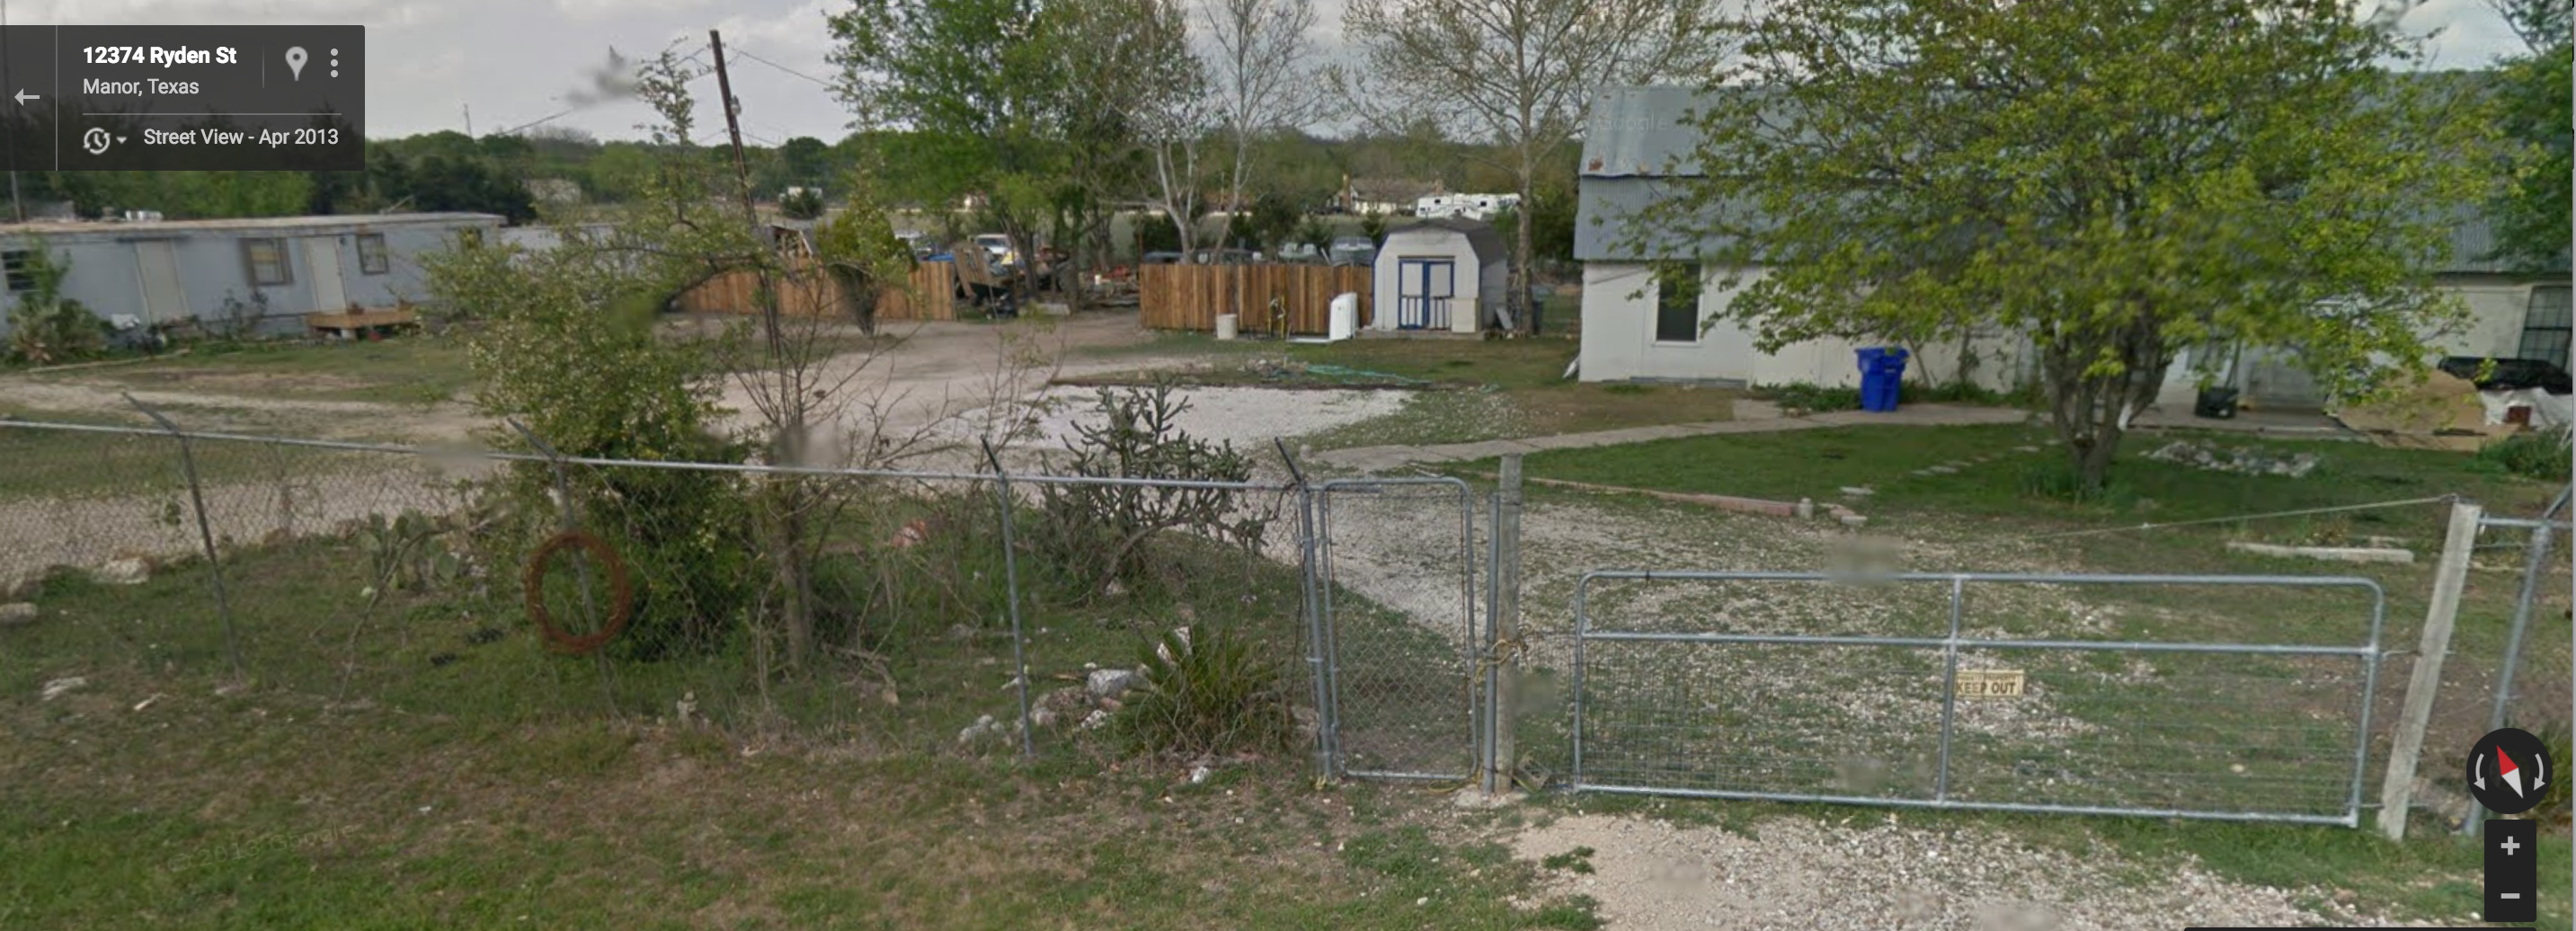 process server killed by dog in Texas